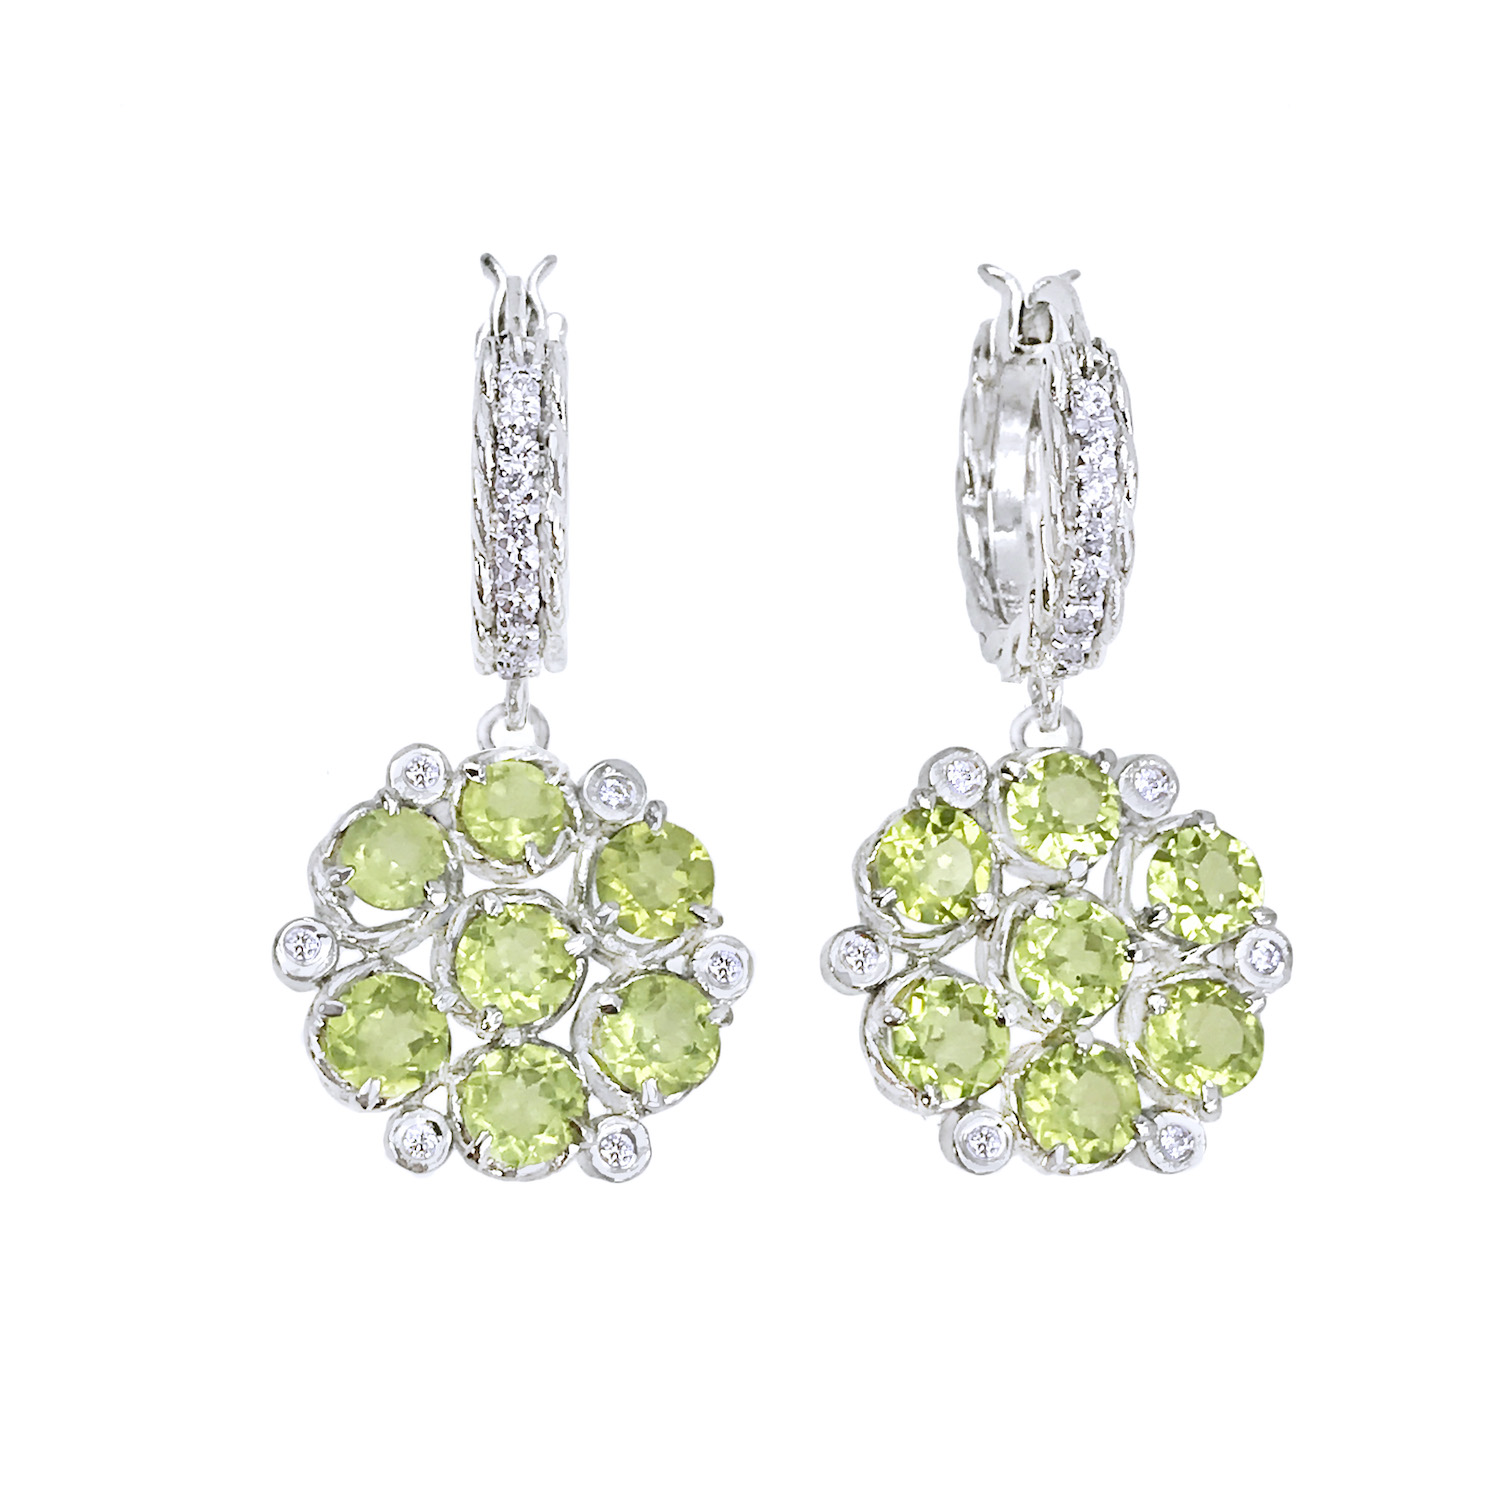 aphrodite-peridot-bouquet-cluster-dangle-earrings-14k-18k-jewelyrie-3-RHW